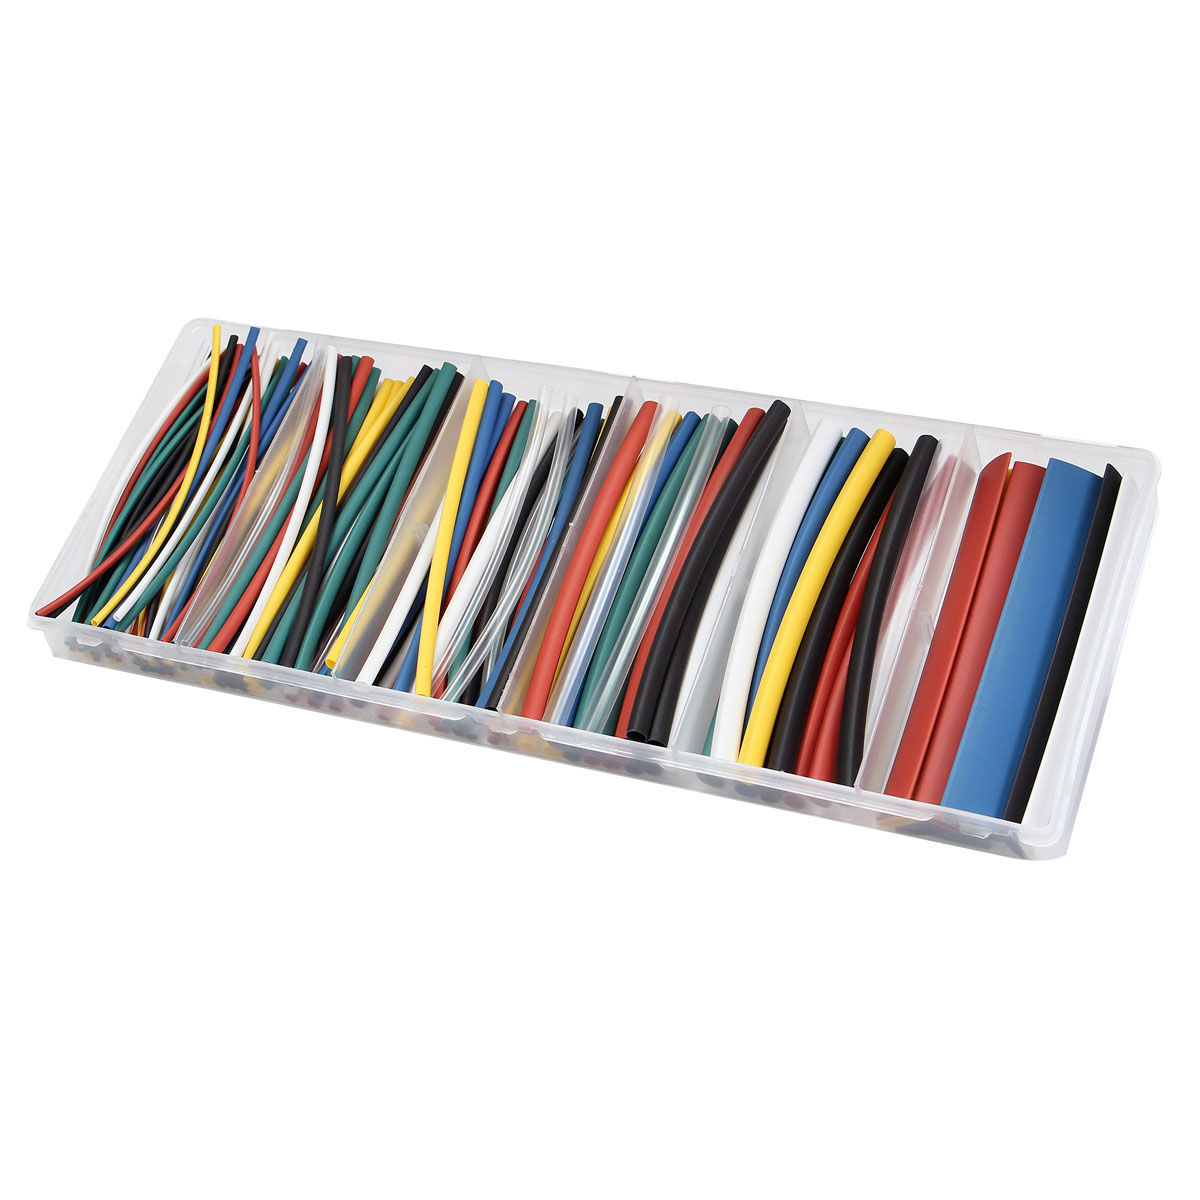 160 PCS Halogen-Free 2:1 Heat Shrink Tubing Wire Cable Kit 6 Sizes 7 Colors Wrap